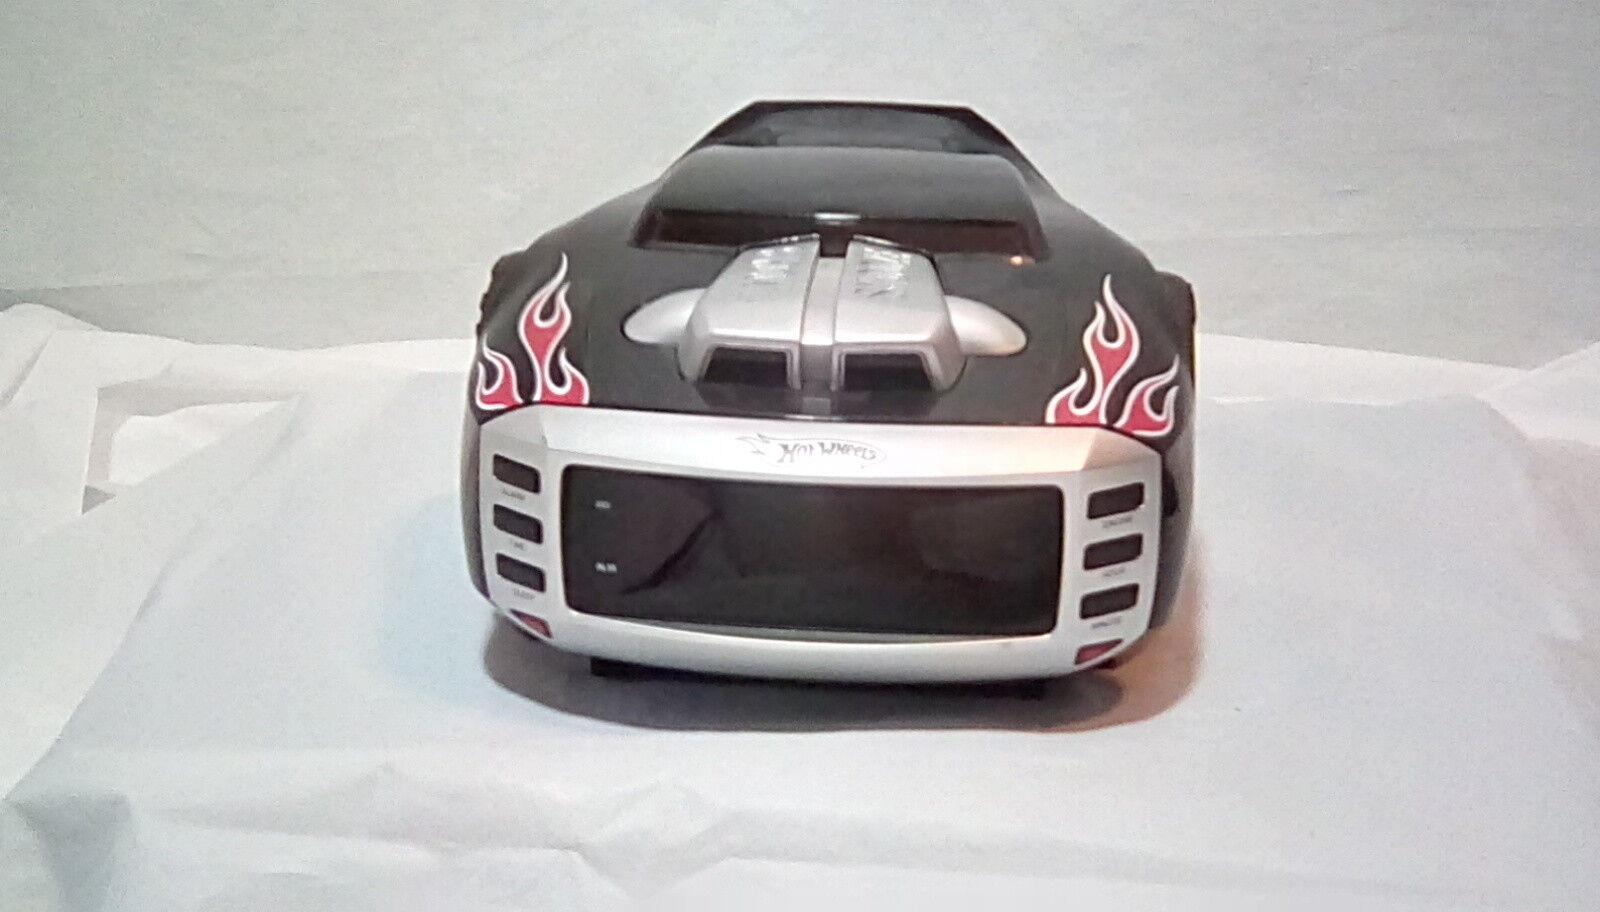 Emerson HW800- Hot Wheels Clock Radio- Black with Red Flames and Night Light